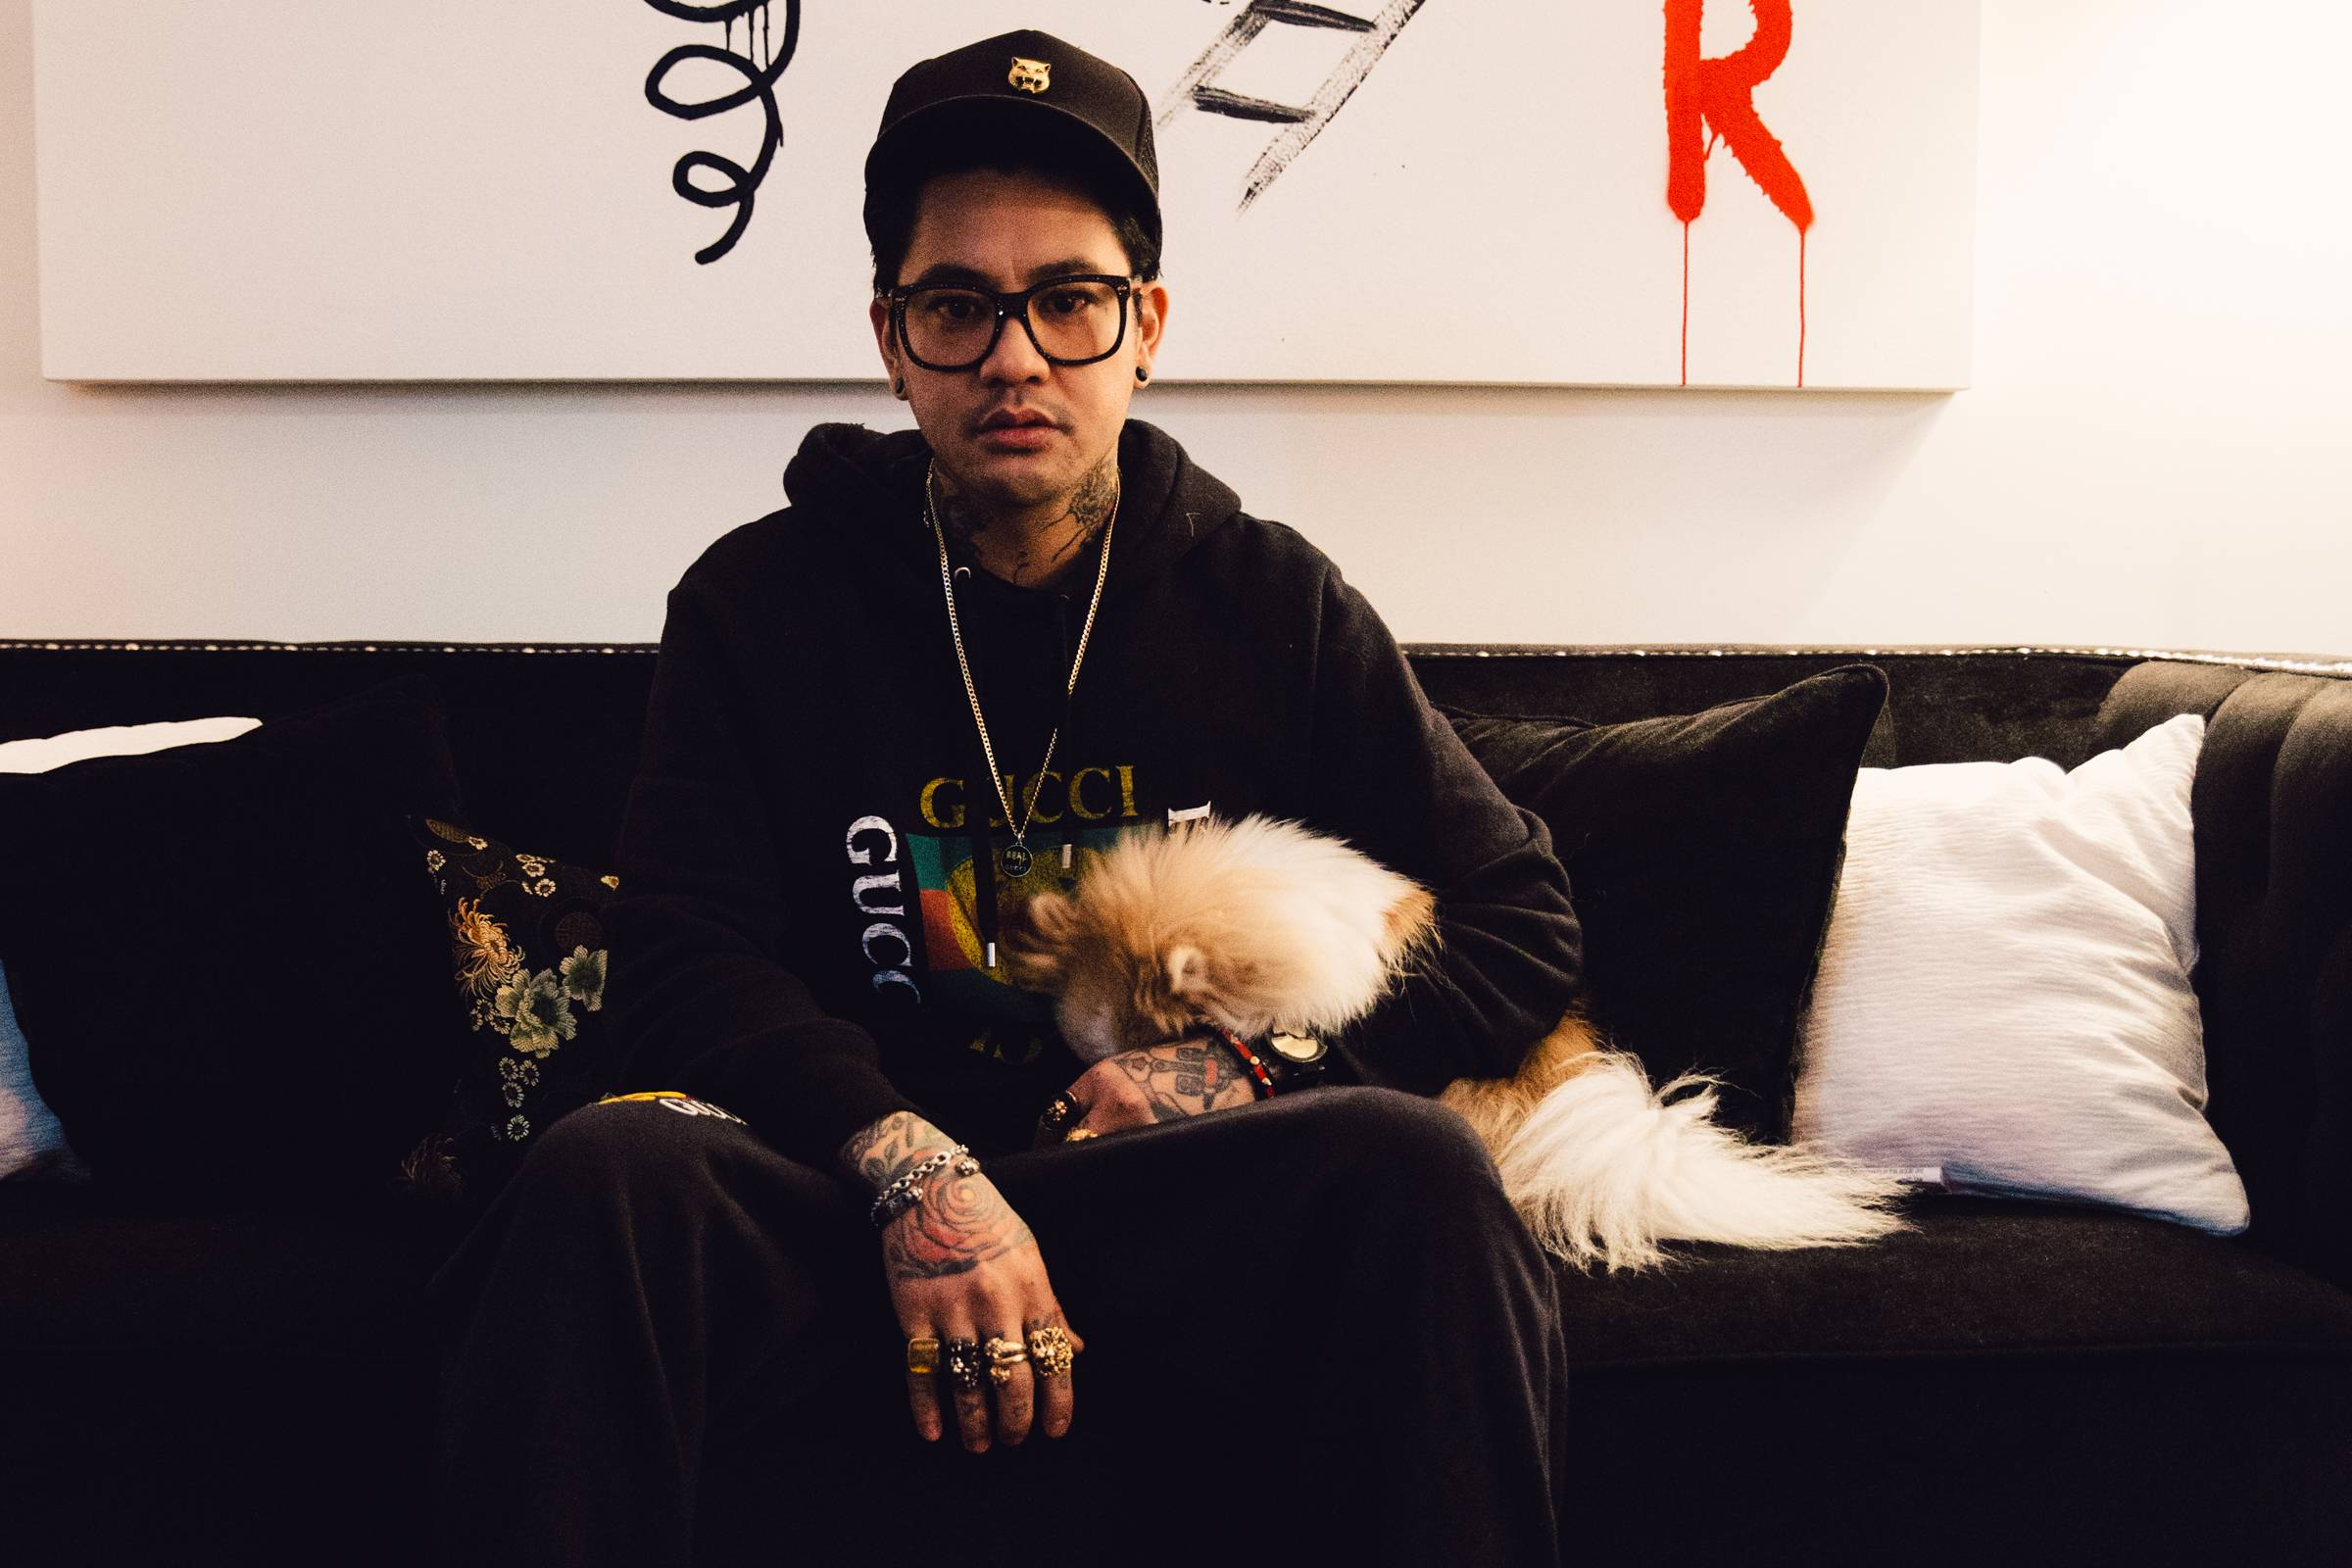 At Home With JonBoy: The Tattoo Artist Opens up About His Life and Wardrobe